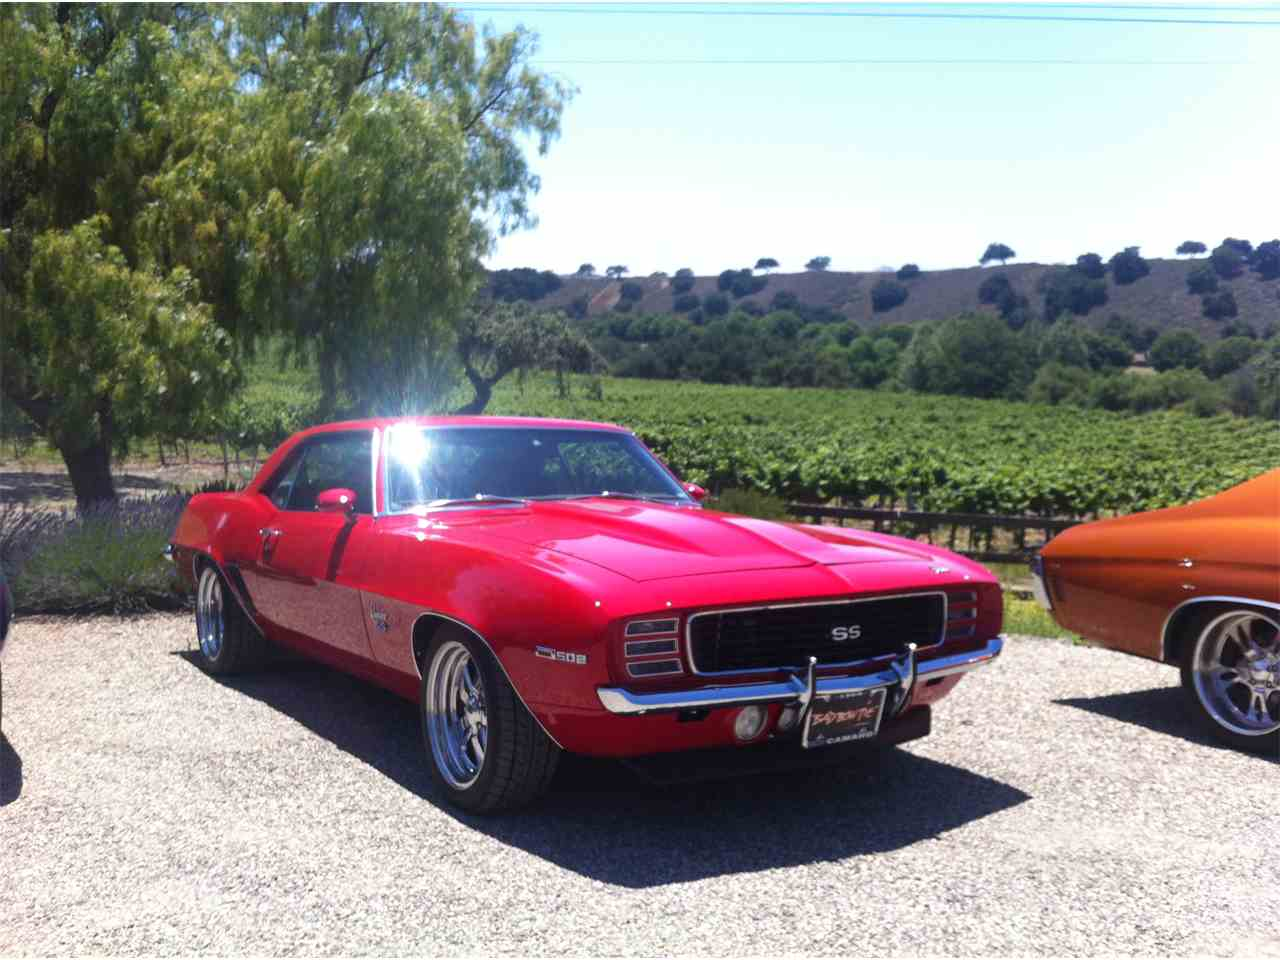 69 camaro ss images galleries with a - Camaro ss ...